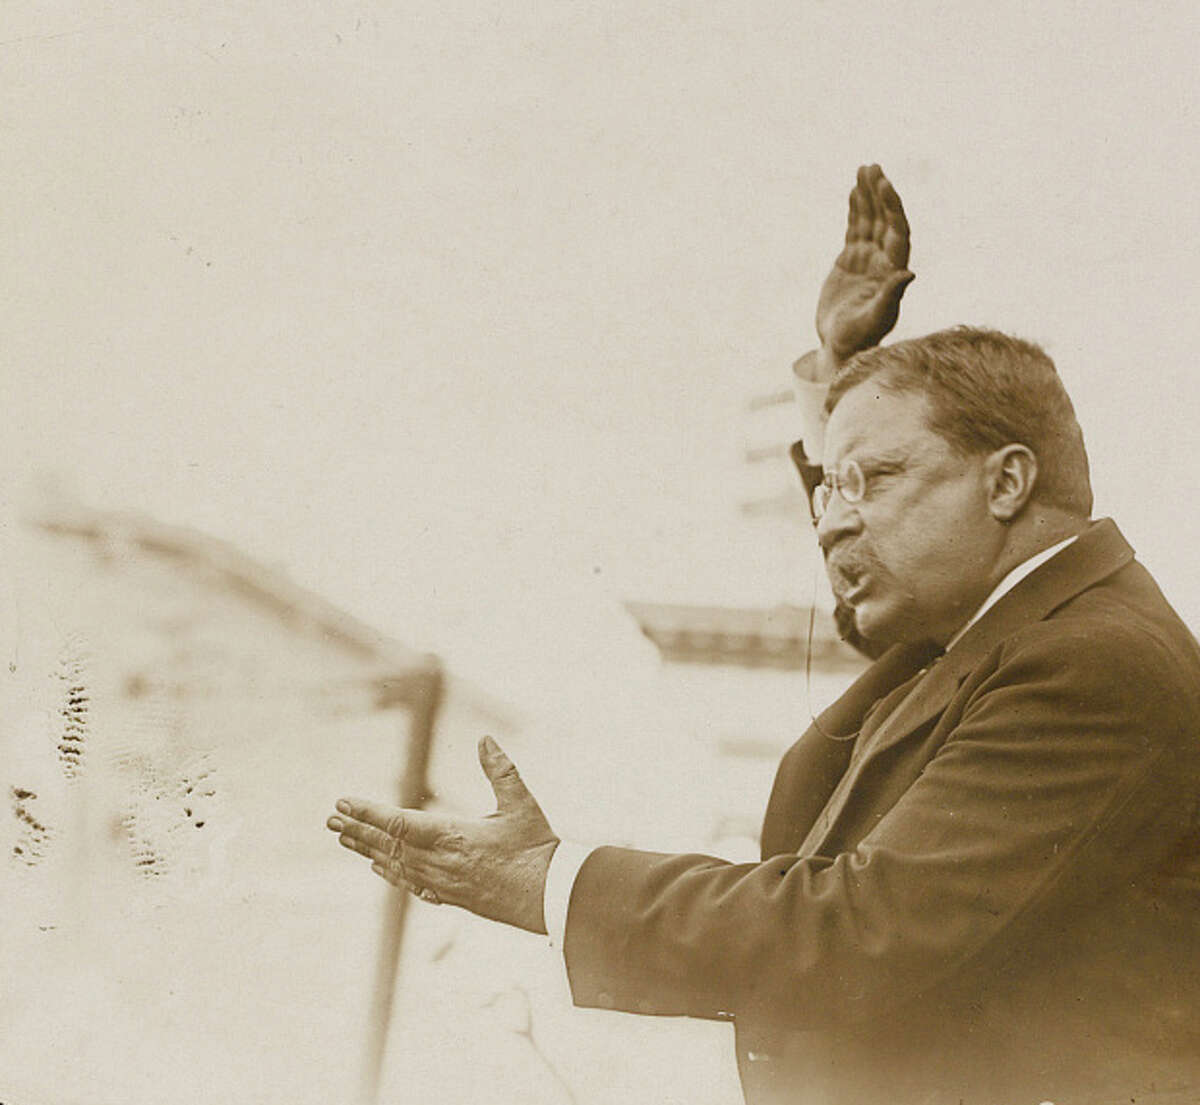 Theodore Roosevelt campaigning in Yonkers, N.Y., Oct 17, 1912.